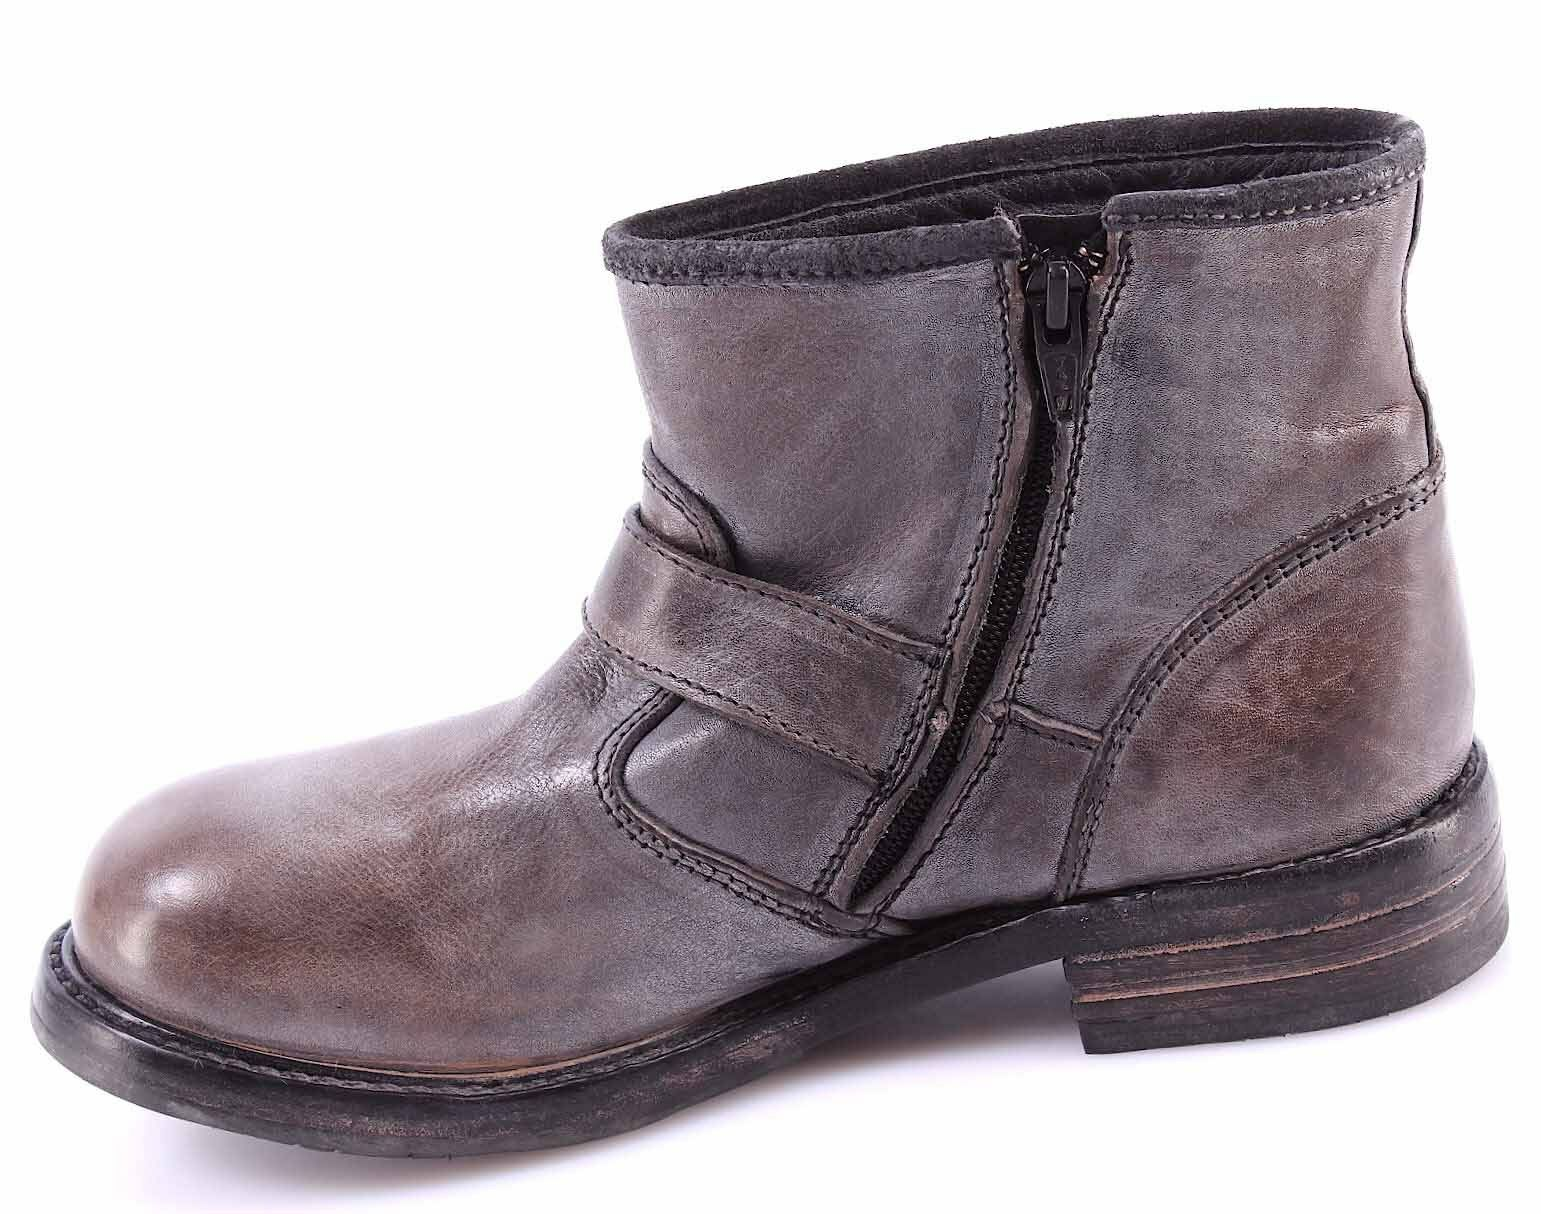 Women's shoes Ankle Boot MOMA 75403-CG Cusna silver Leather Leather Leather Silver Vintage New 4e64c1